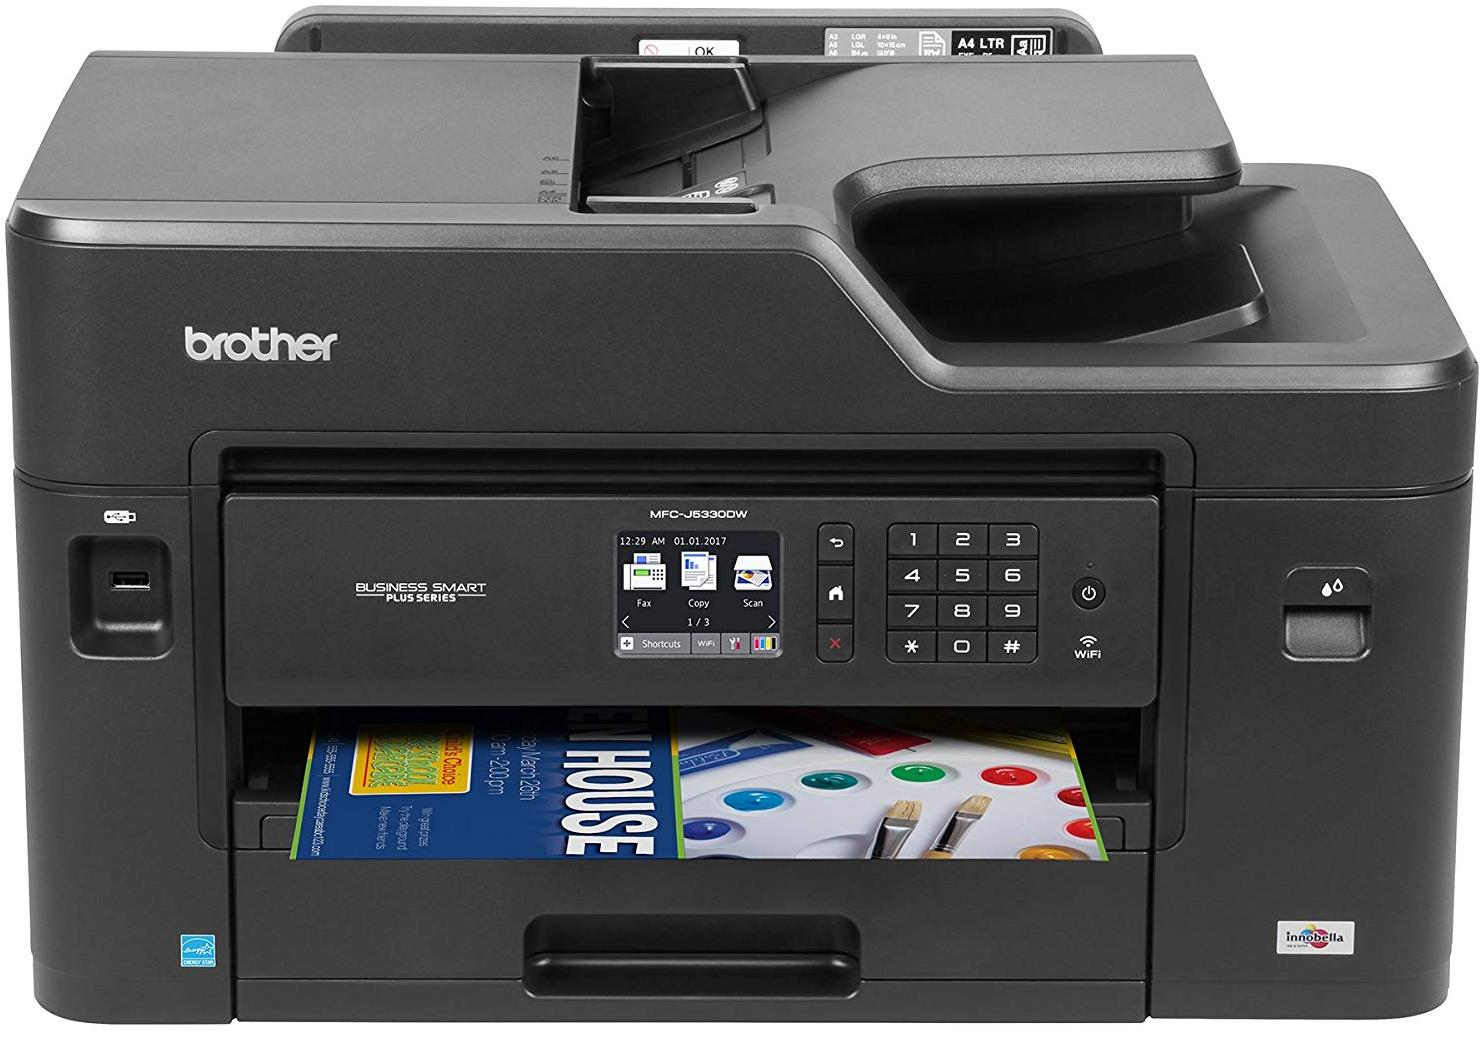 Brother MFC-J5330DW A4 with A3 Inkjet Printer